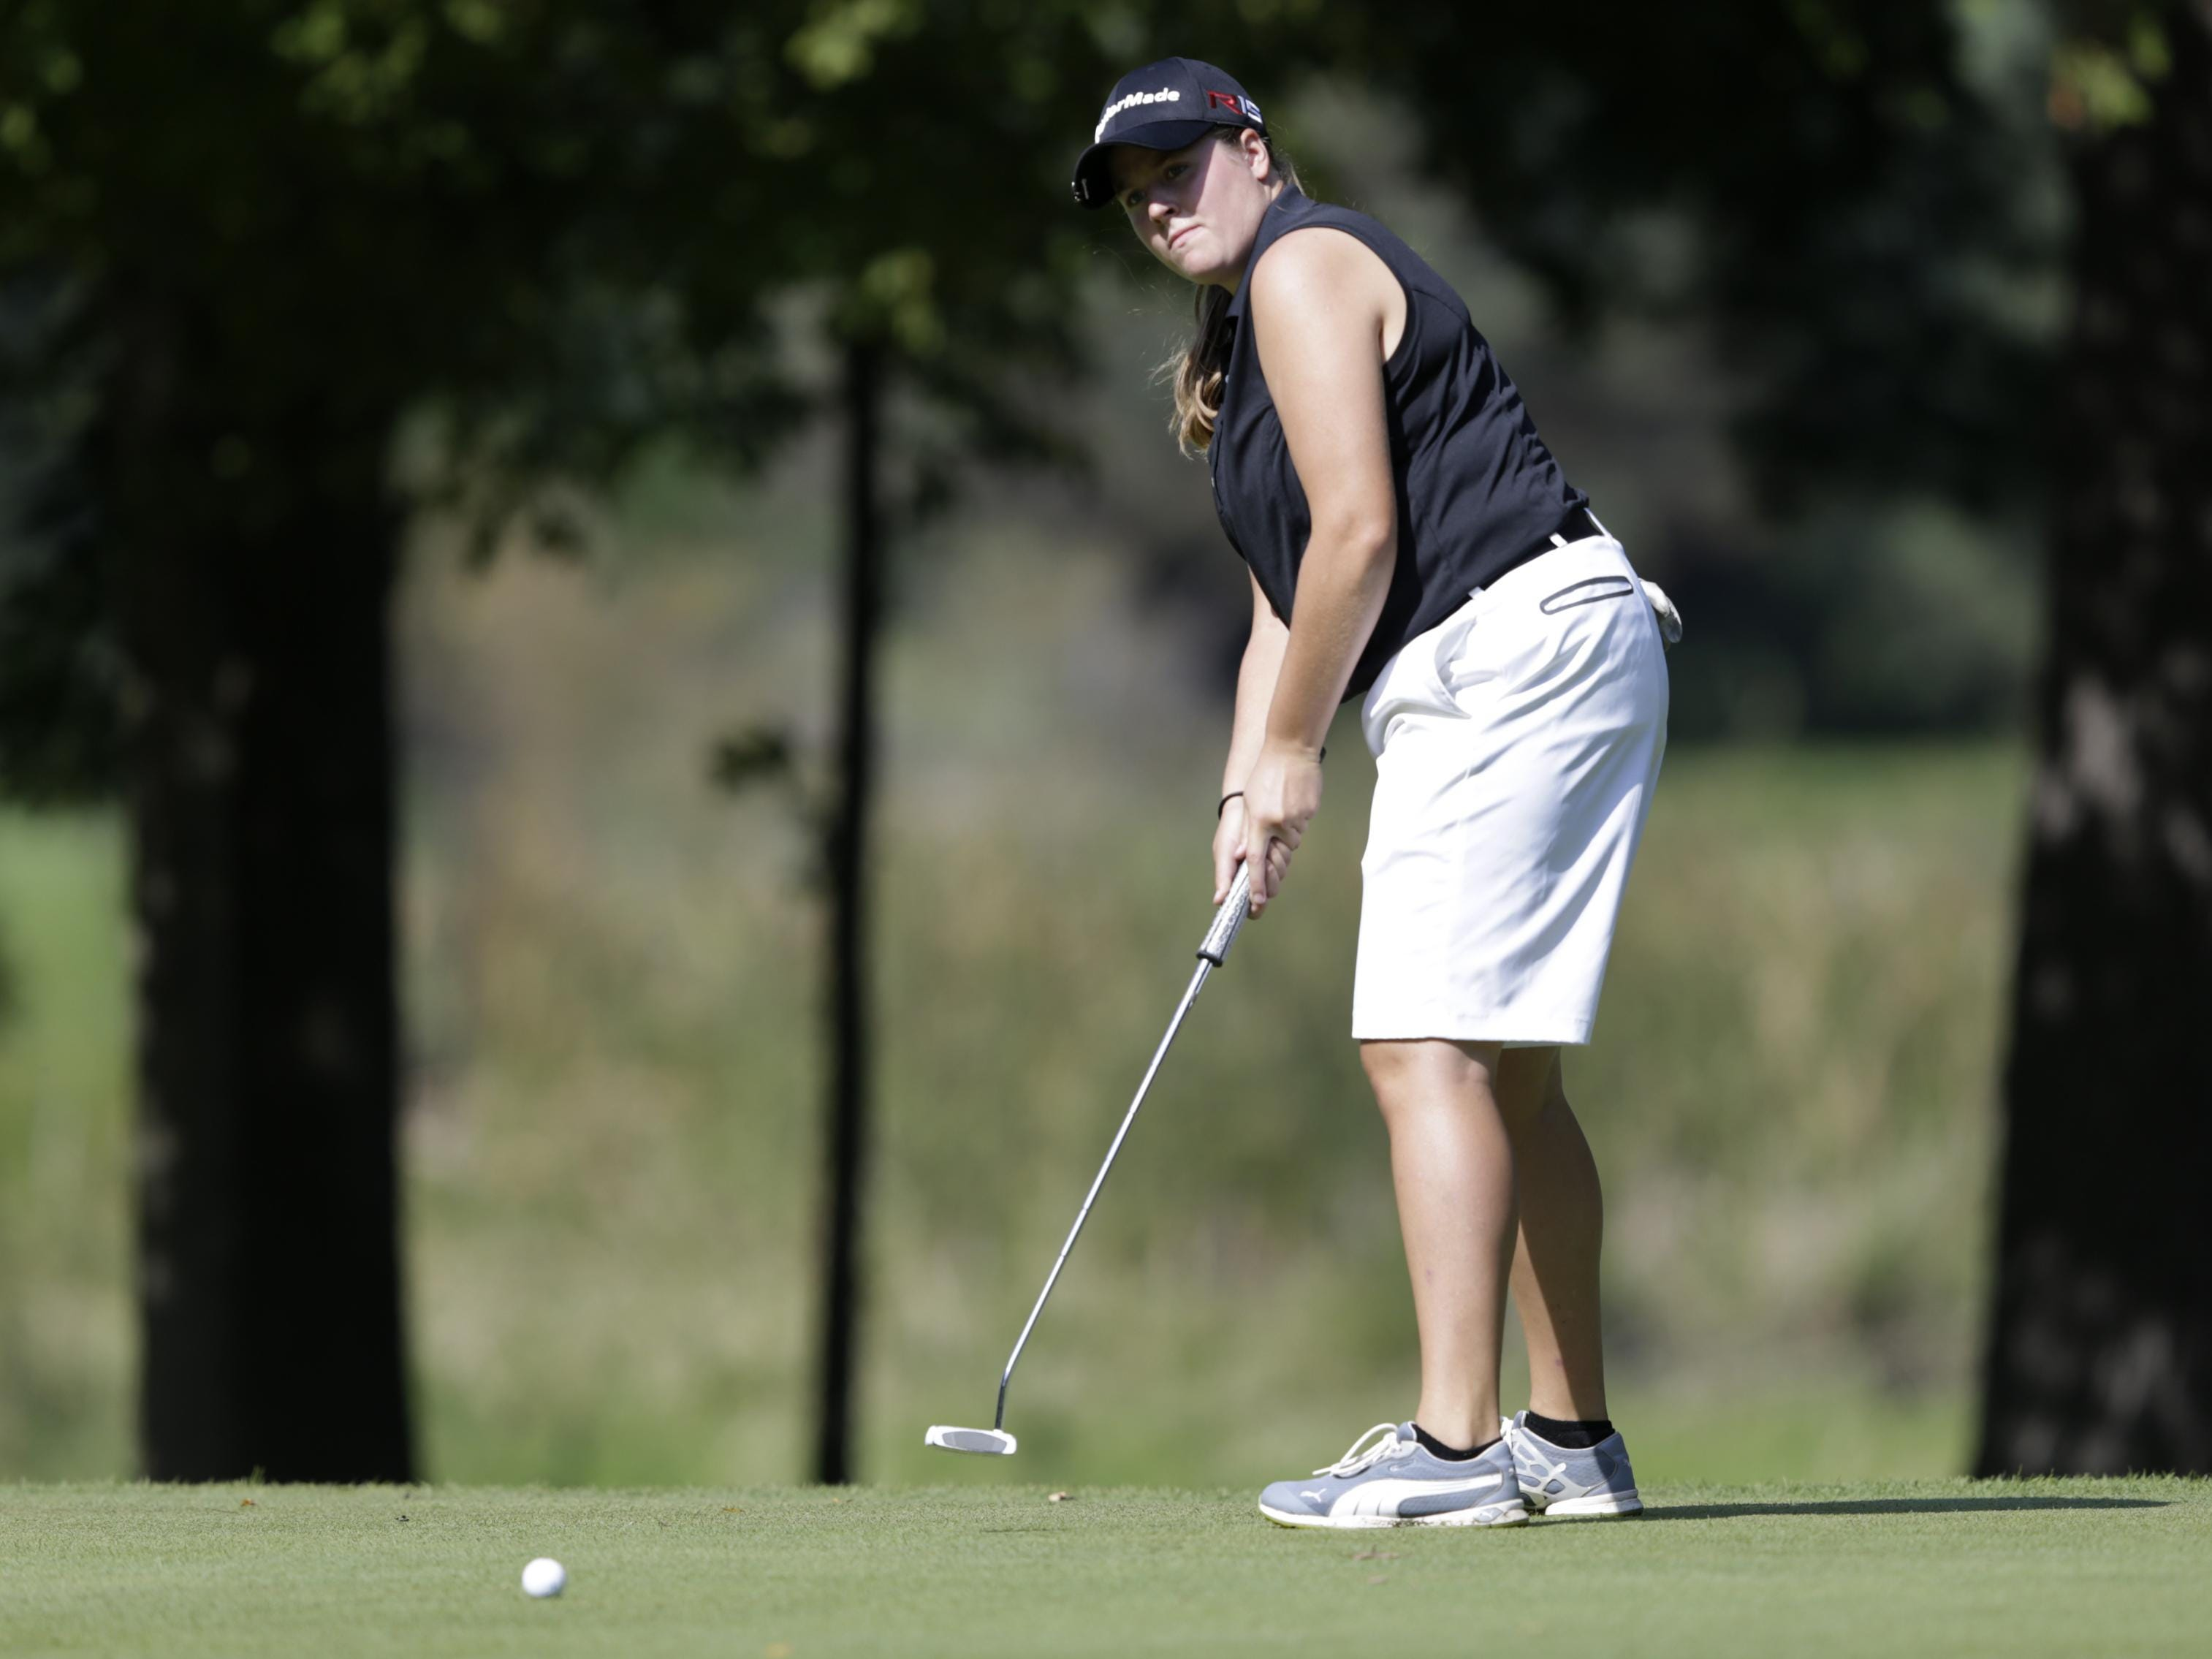 Trystin Kluess of Fox Valley Lutheran was co-medalist at the North Eastern Conference golf meet at Wander Springs Golf Course in Greenleaf on Wednesday.